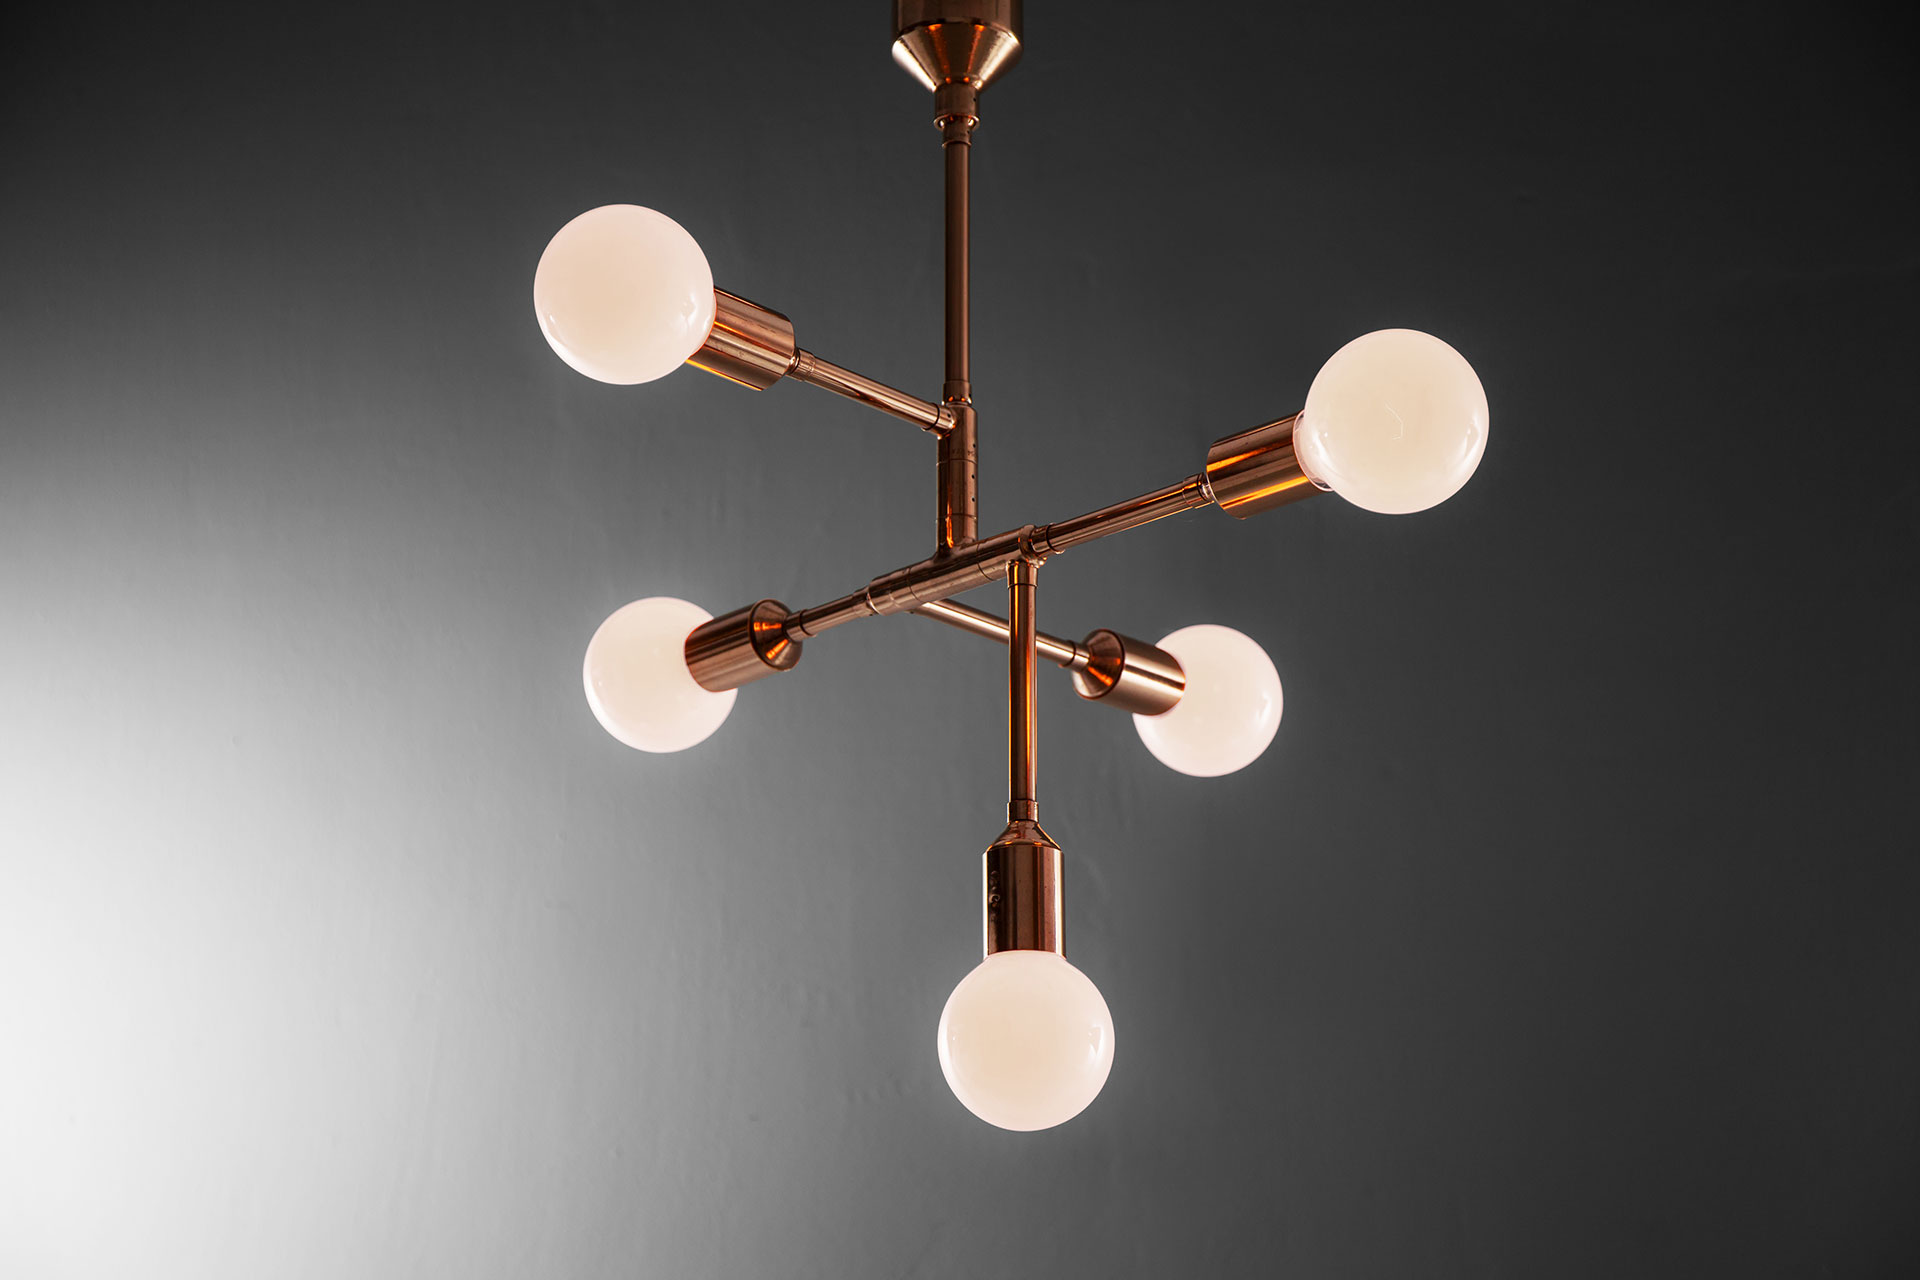 Designer lighting chandelier in copper or gold color